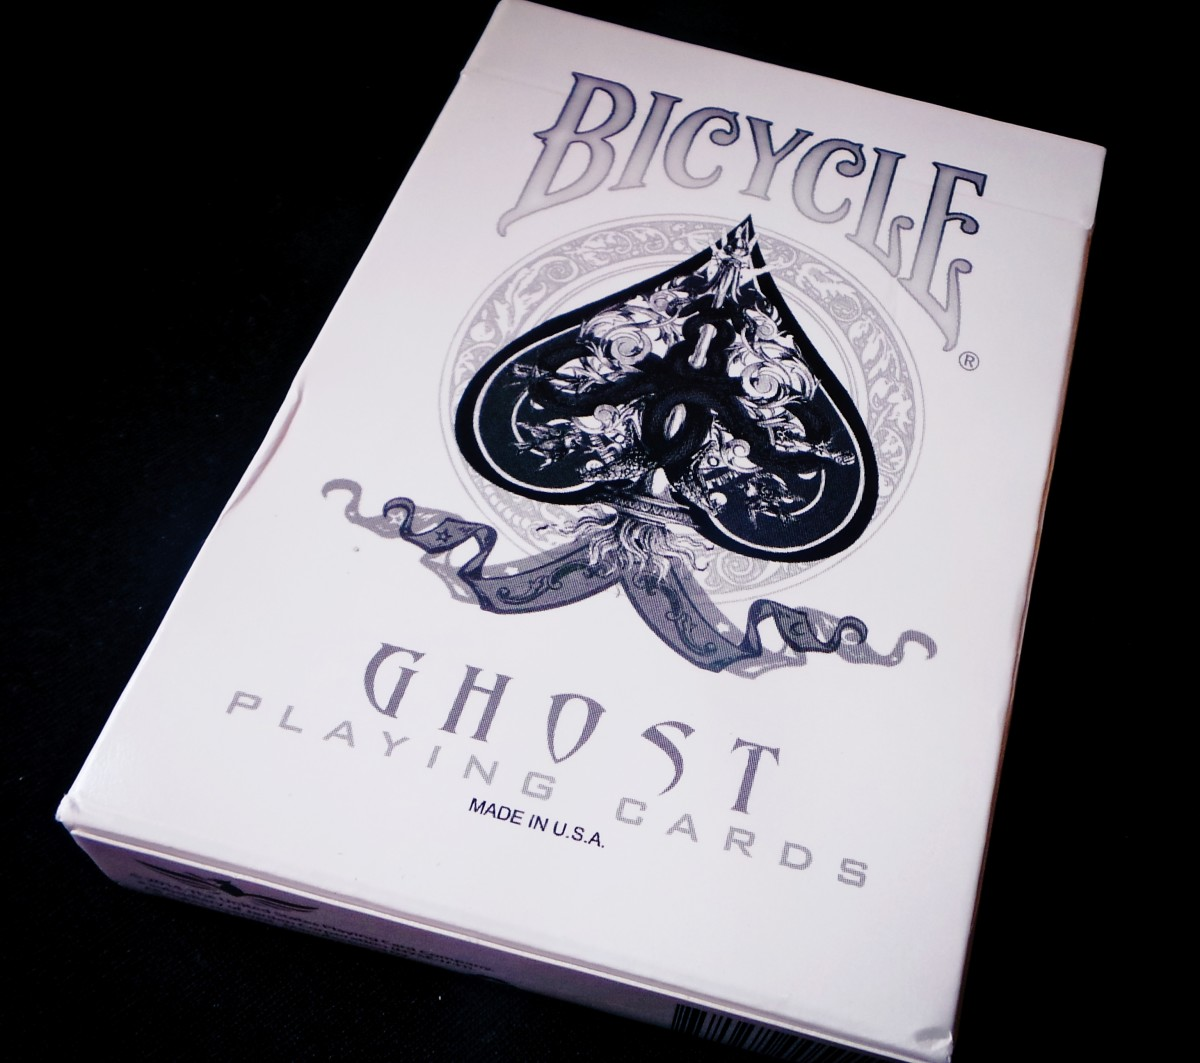 'Ghost' Playing Cards by Bicycle